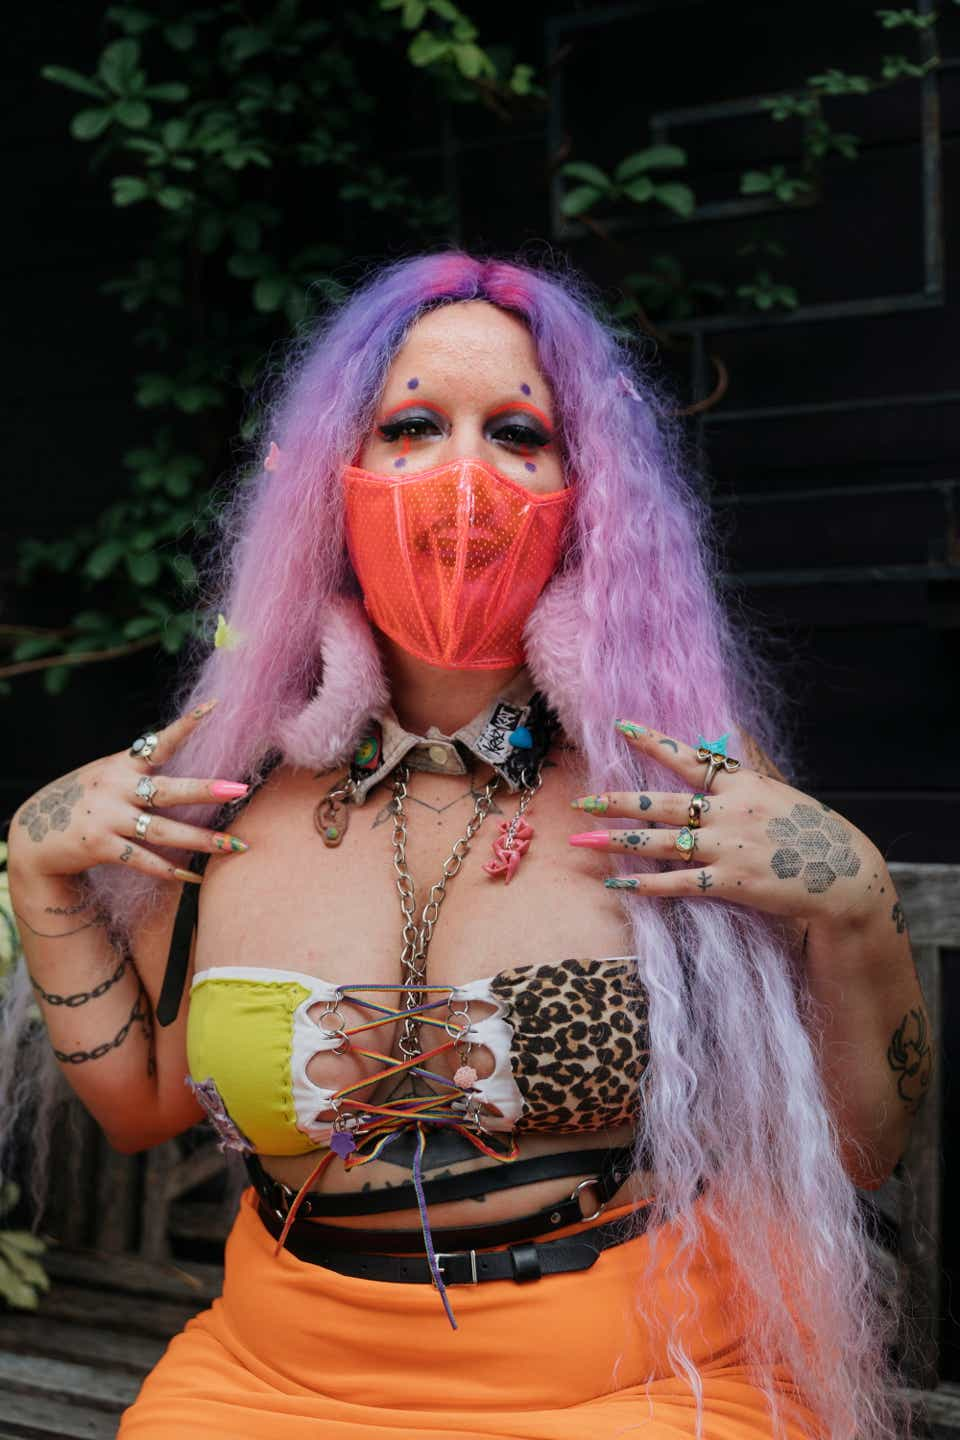 Moody has ombre pink and purple crimped hair. She's wearing a hot pink face mask, a cheetah print tube top, and an orange skirt.